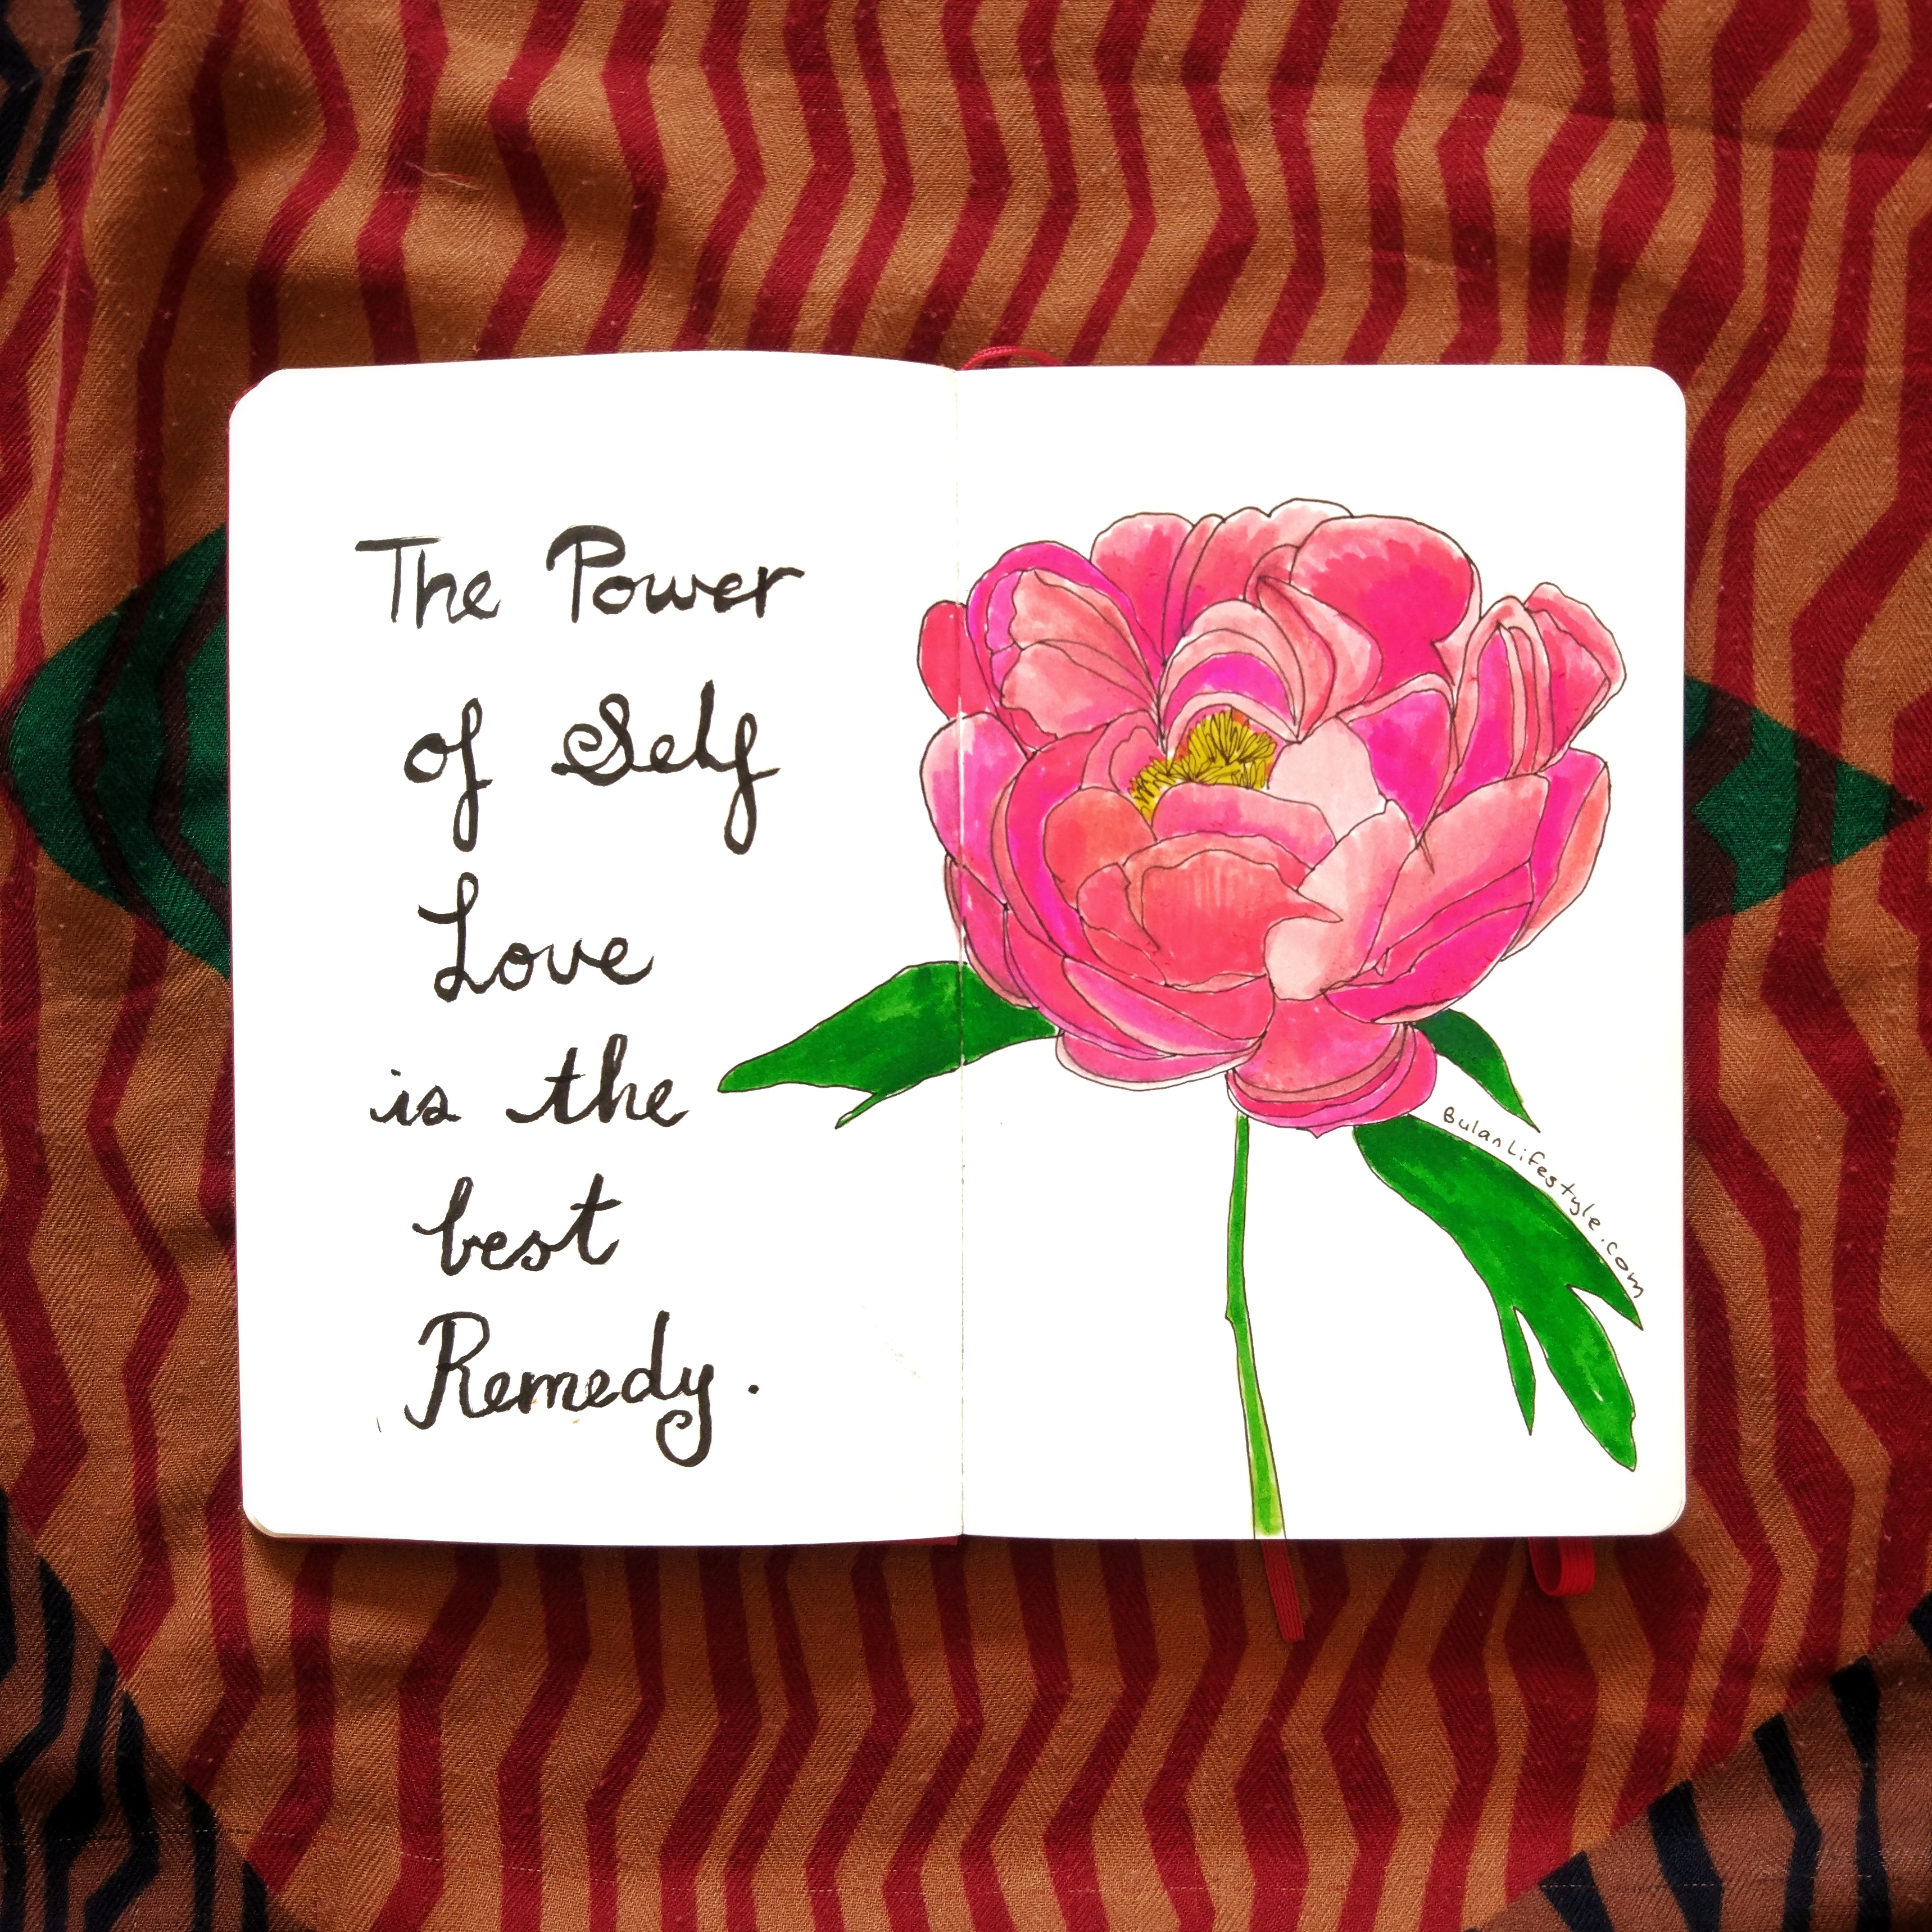 The power of self love is the best remedy.